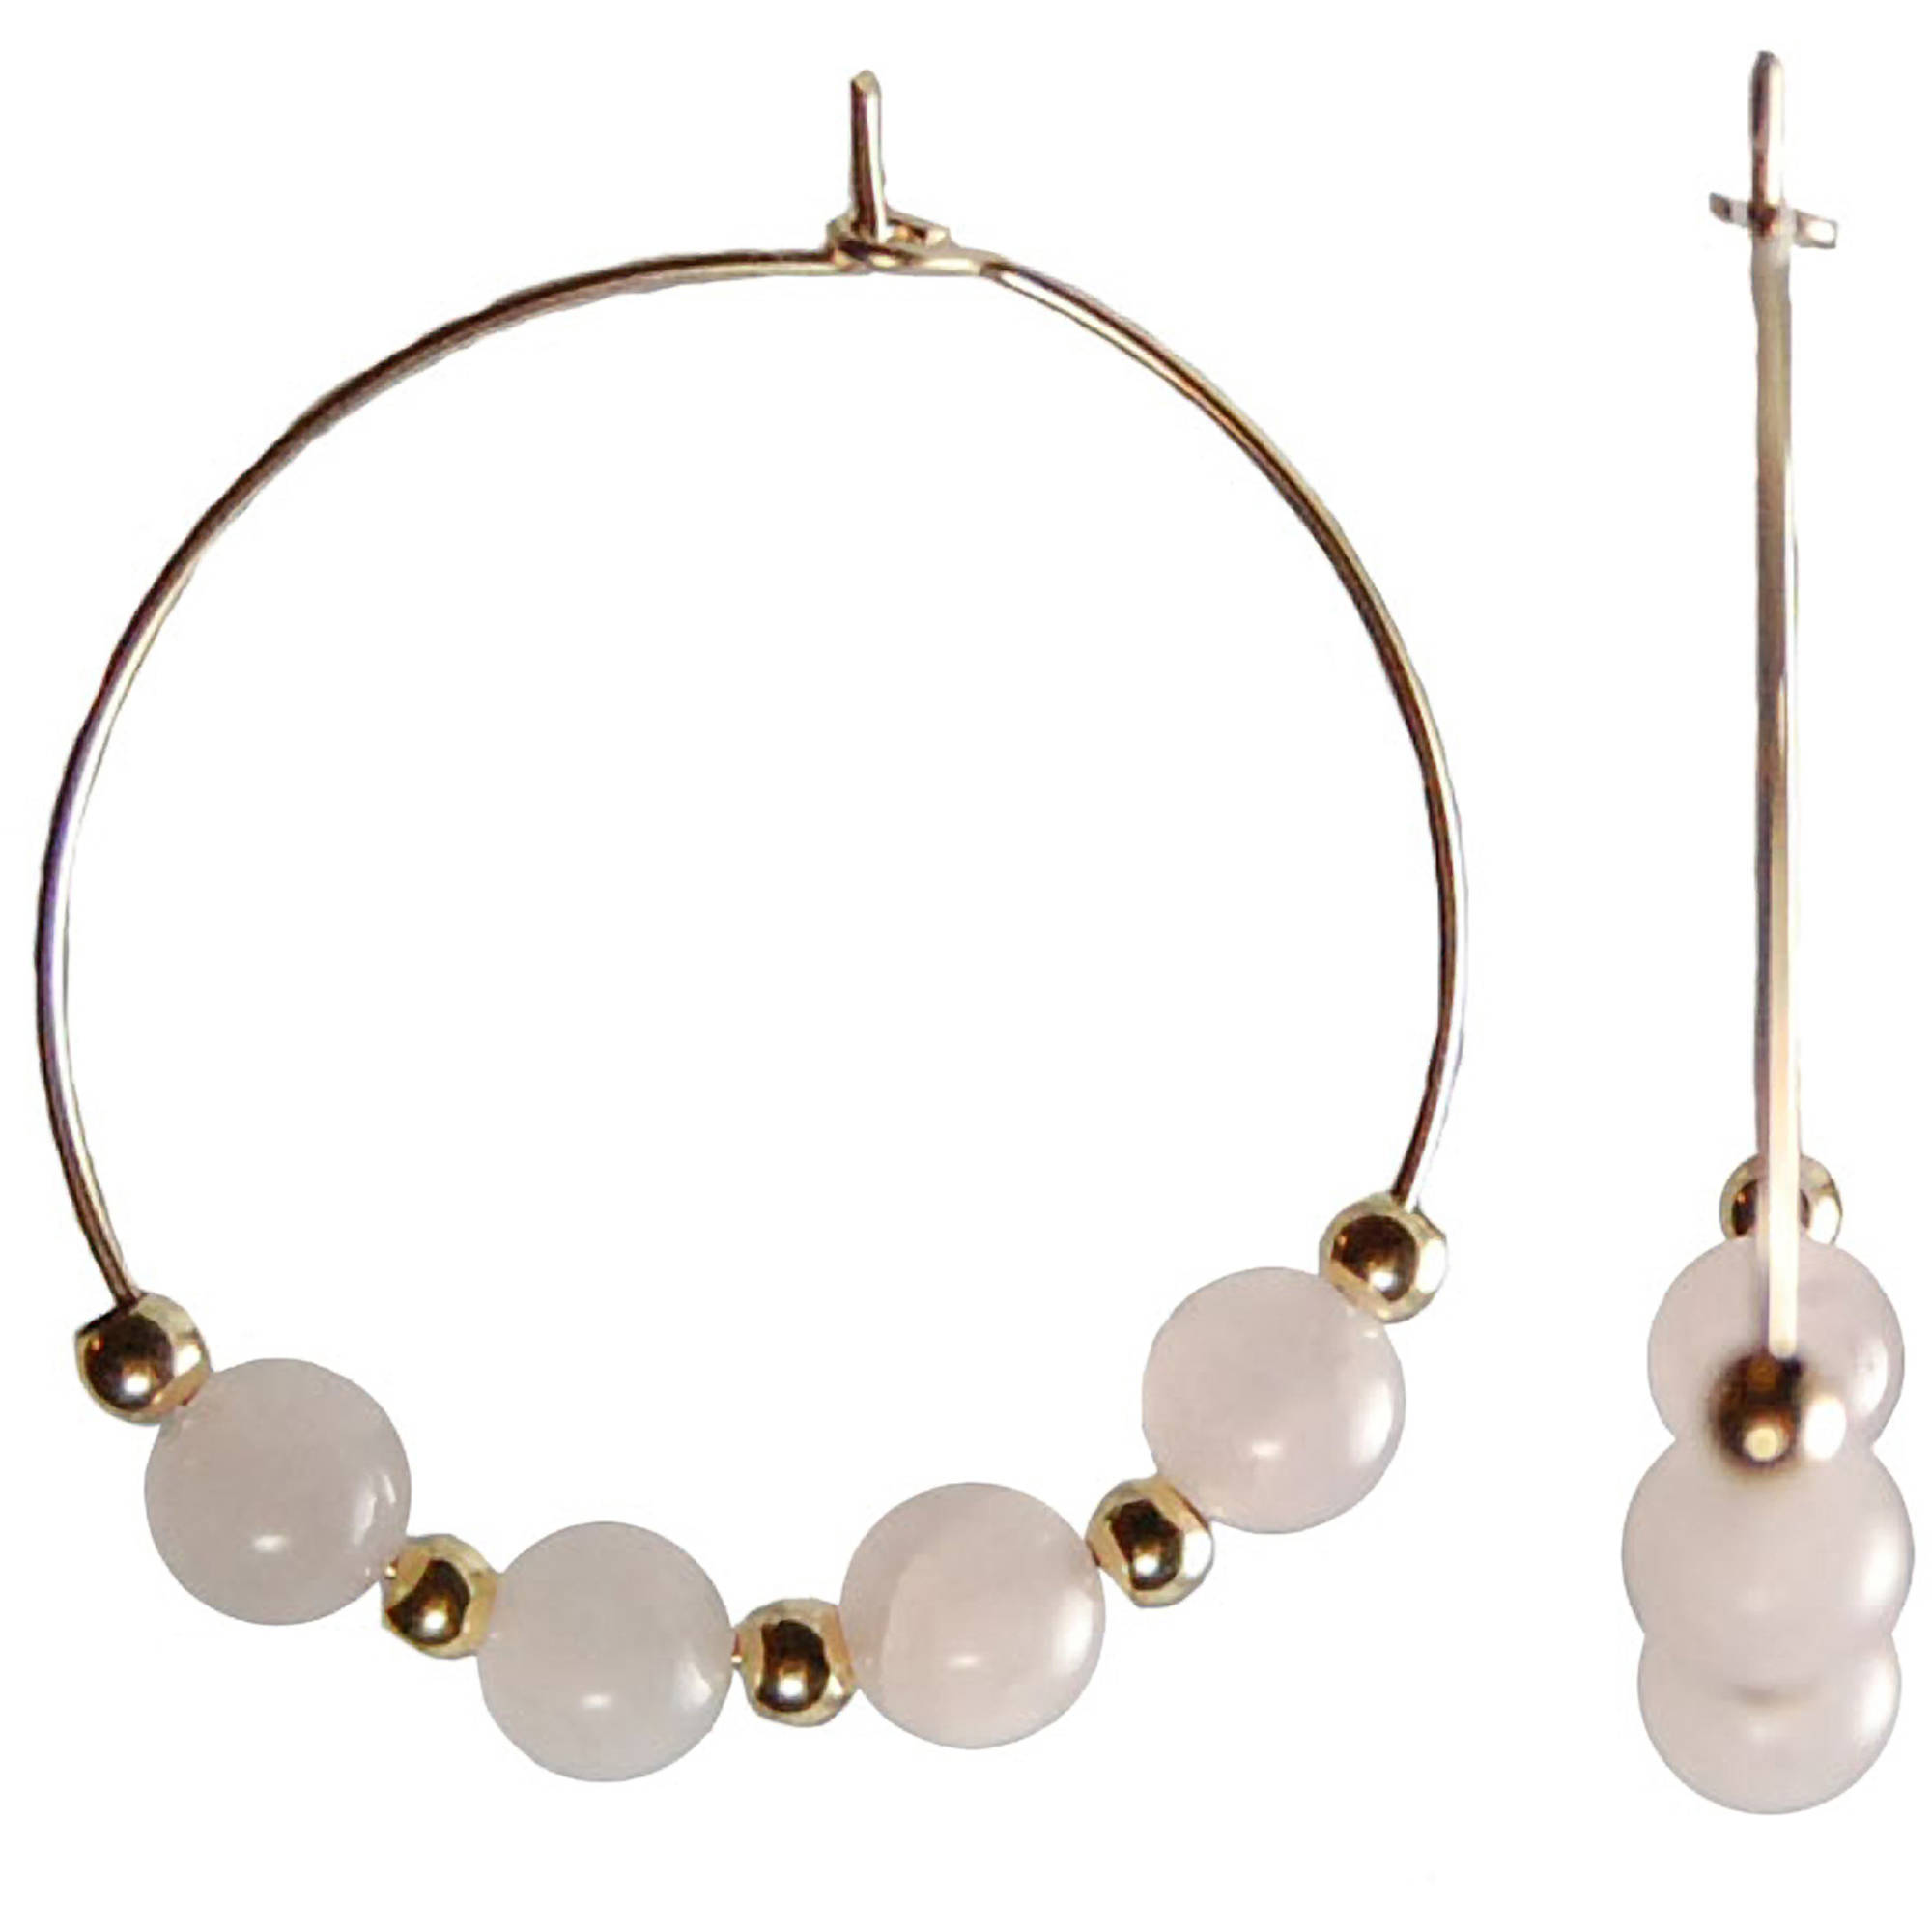 Miss Zoe by Calinana Gold Filled Hoop Earrings In Pink